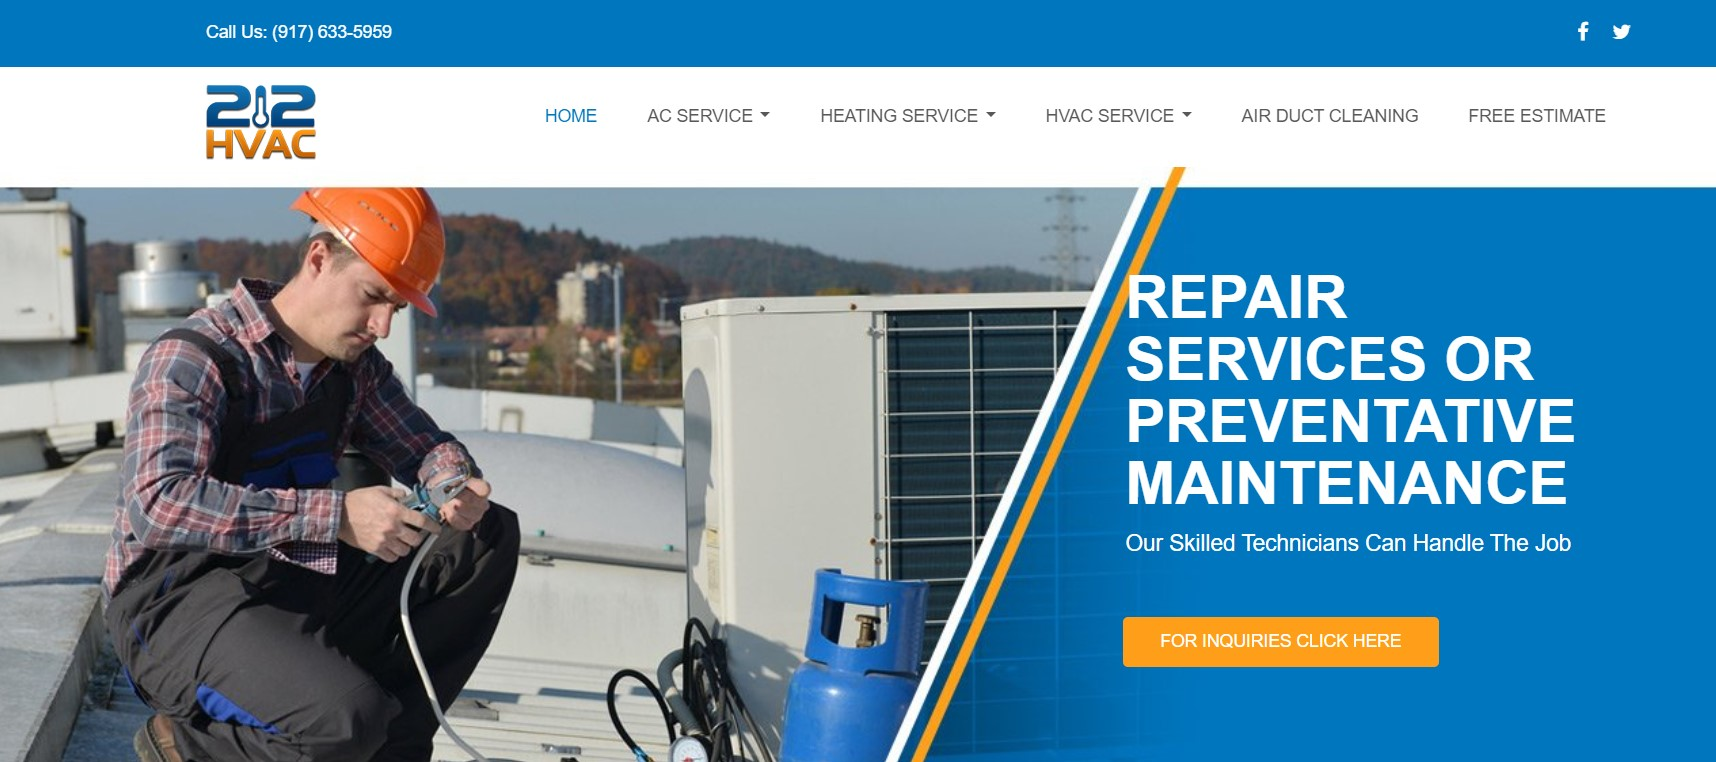 212 hvac services in new york